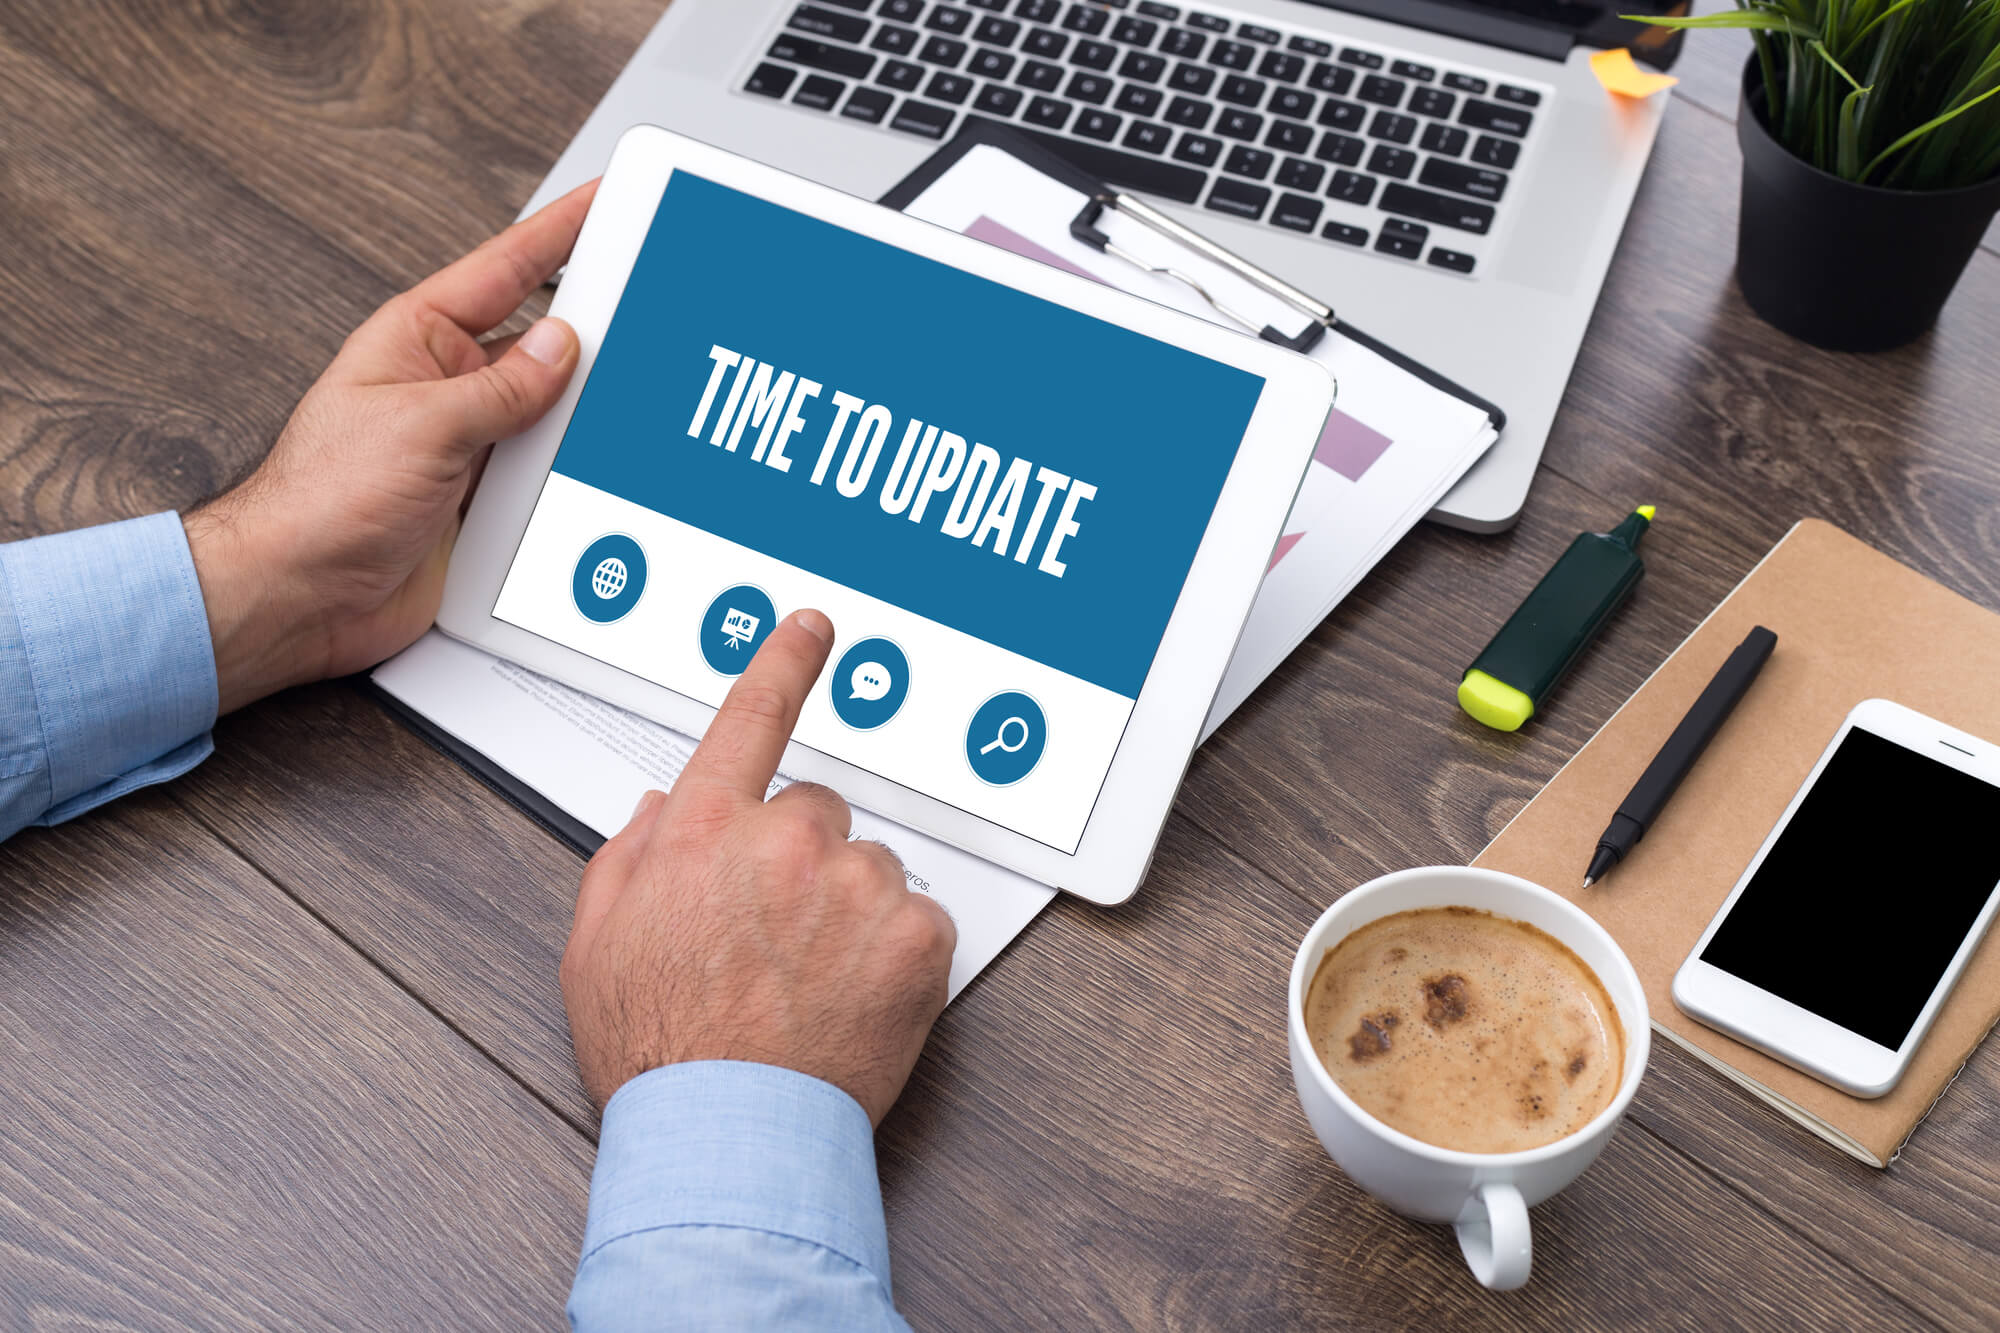 7 REASONS WHY YOU SHOULD UPDATE YOUR WEBSITE